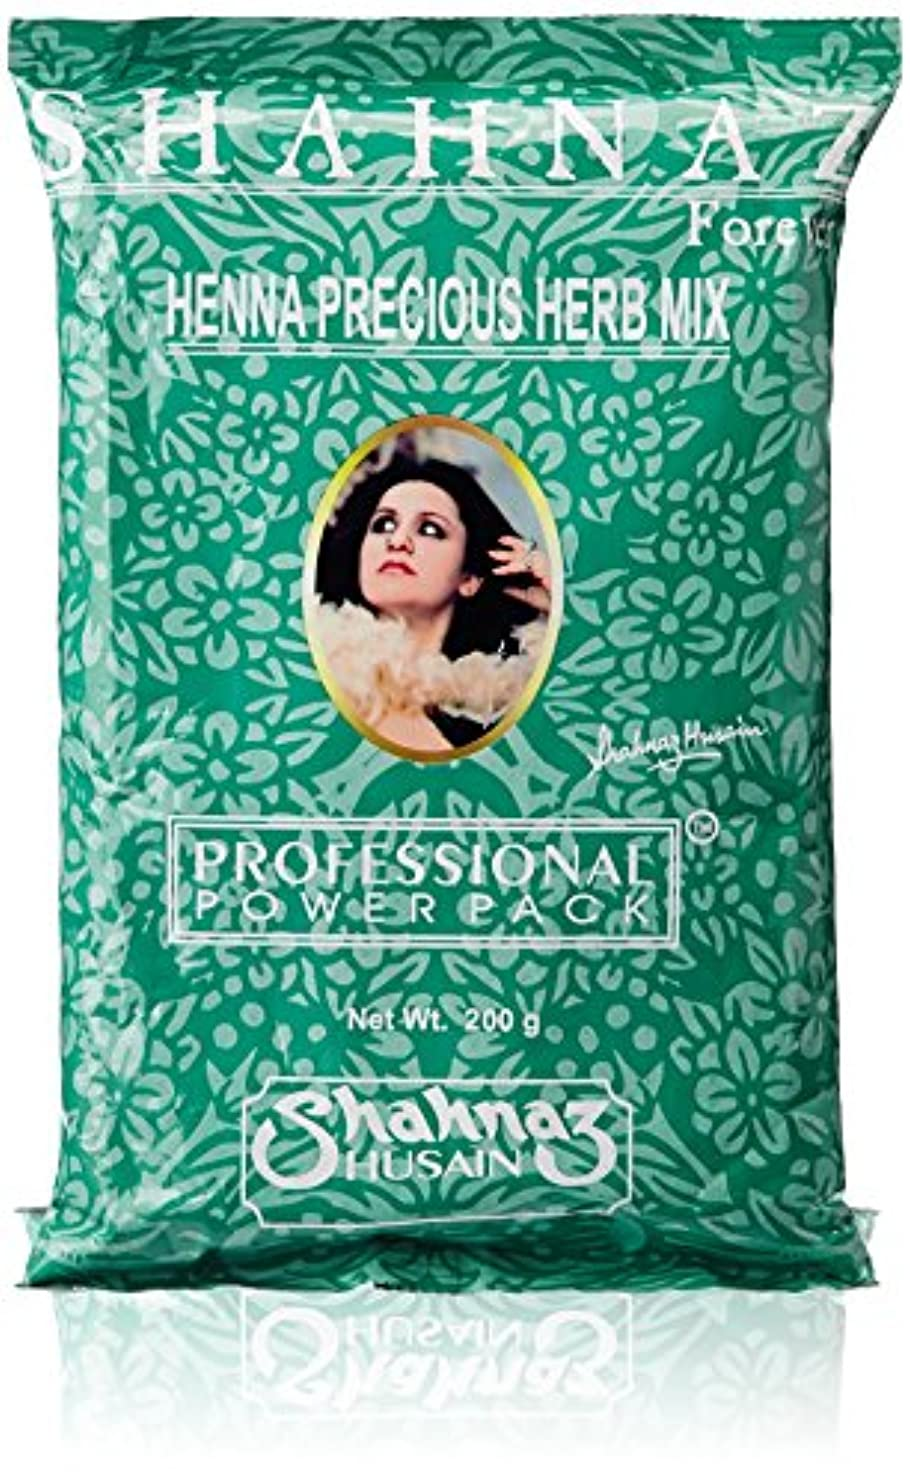 Shahnaz Husain Henna Precious Herb Mix, 200g (PACK OF 3)